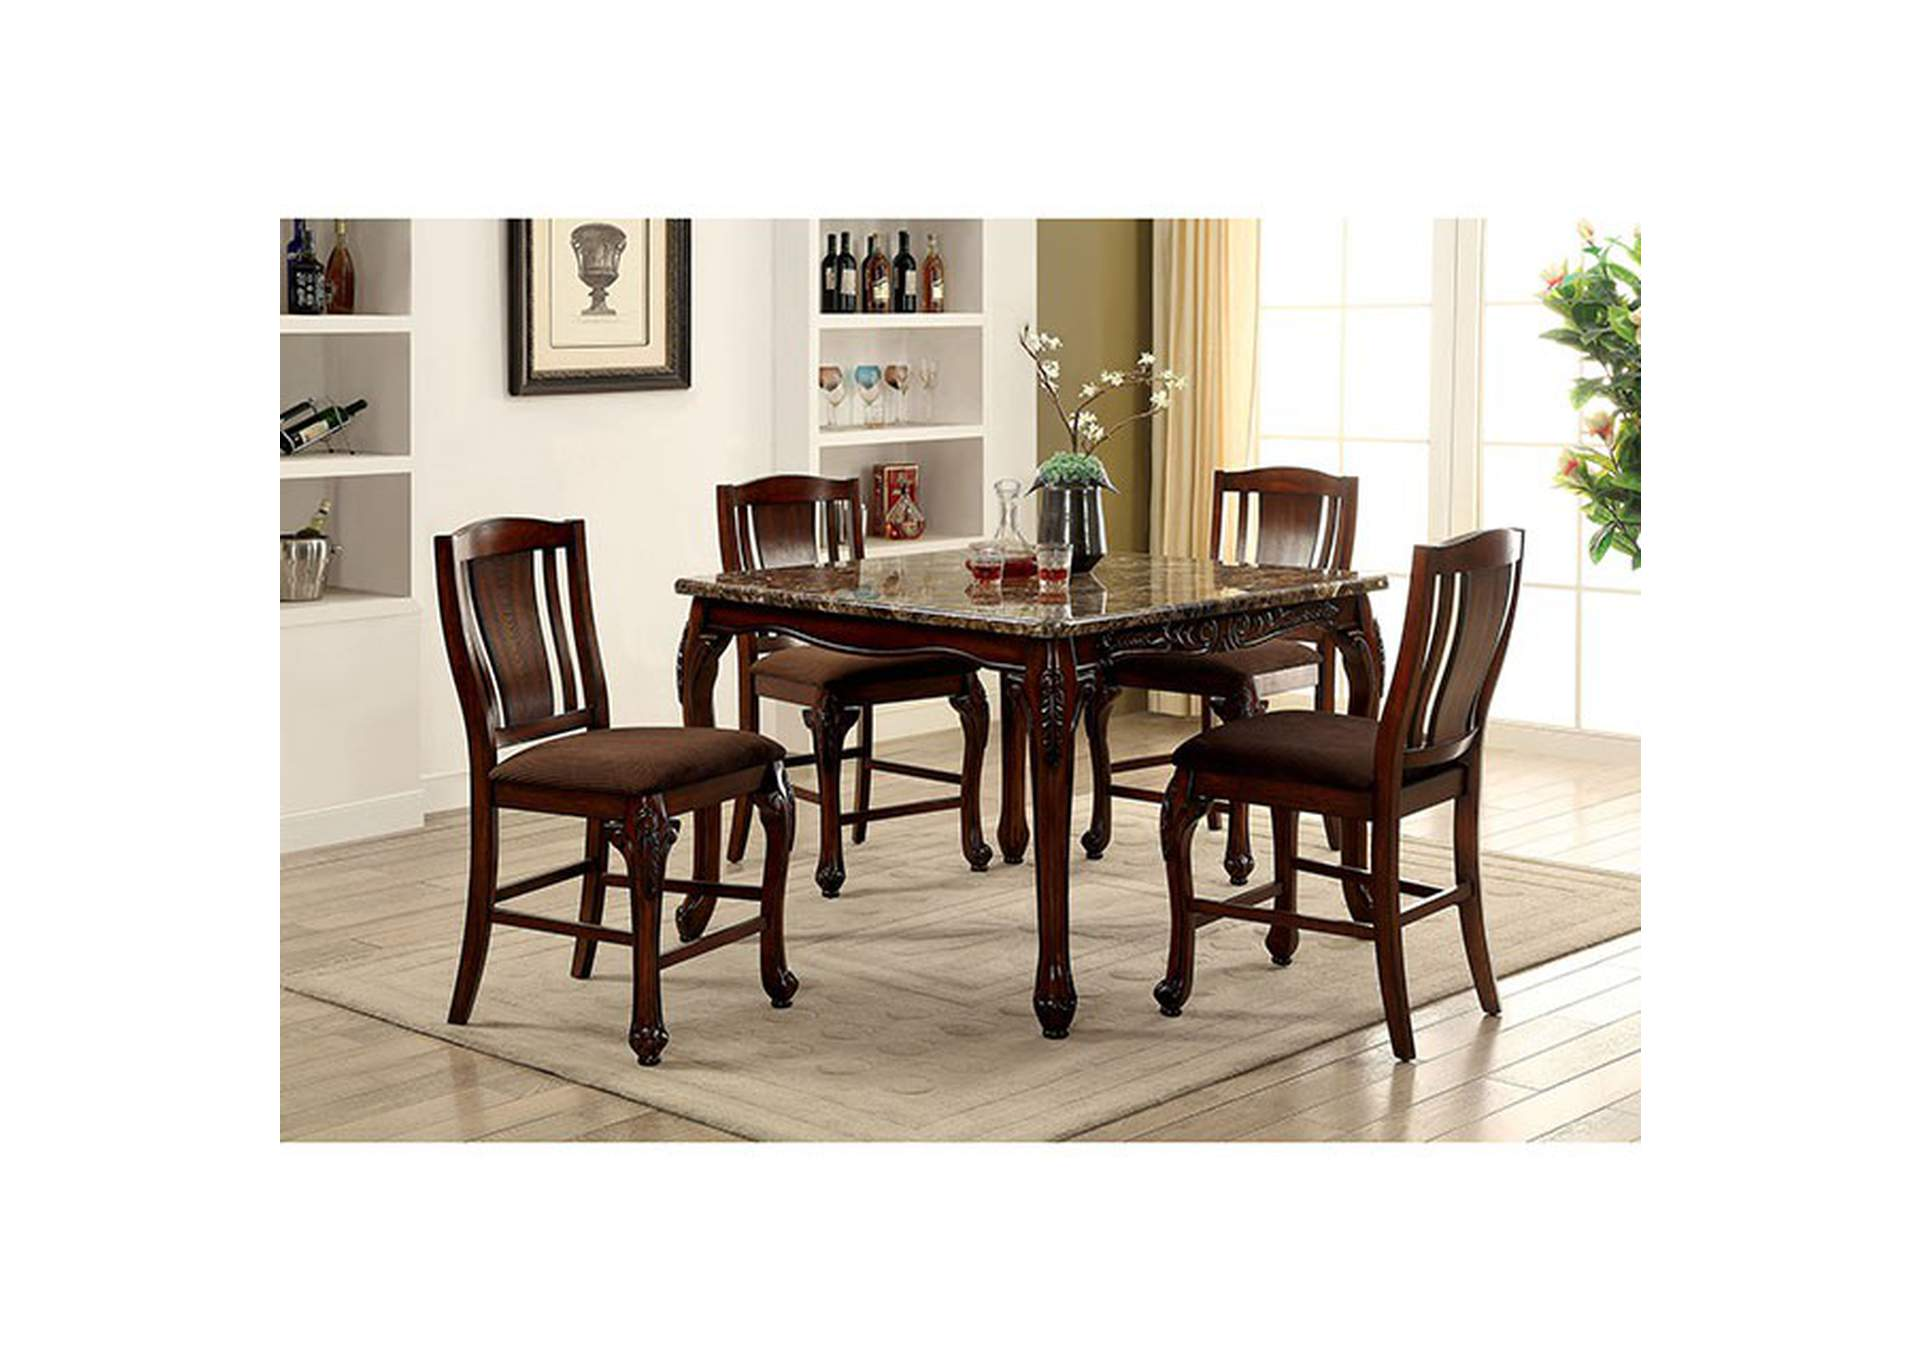 Johannesburg Brown Counter Table w/Faux Marble Top,Furniture of America